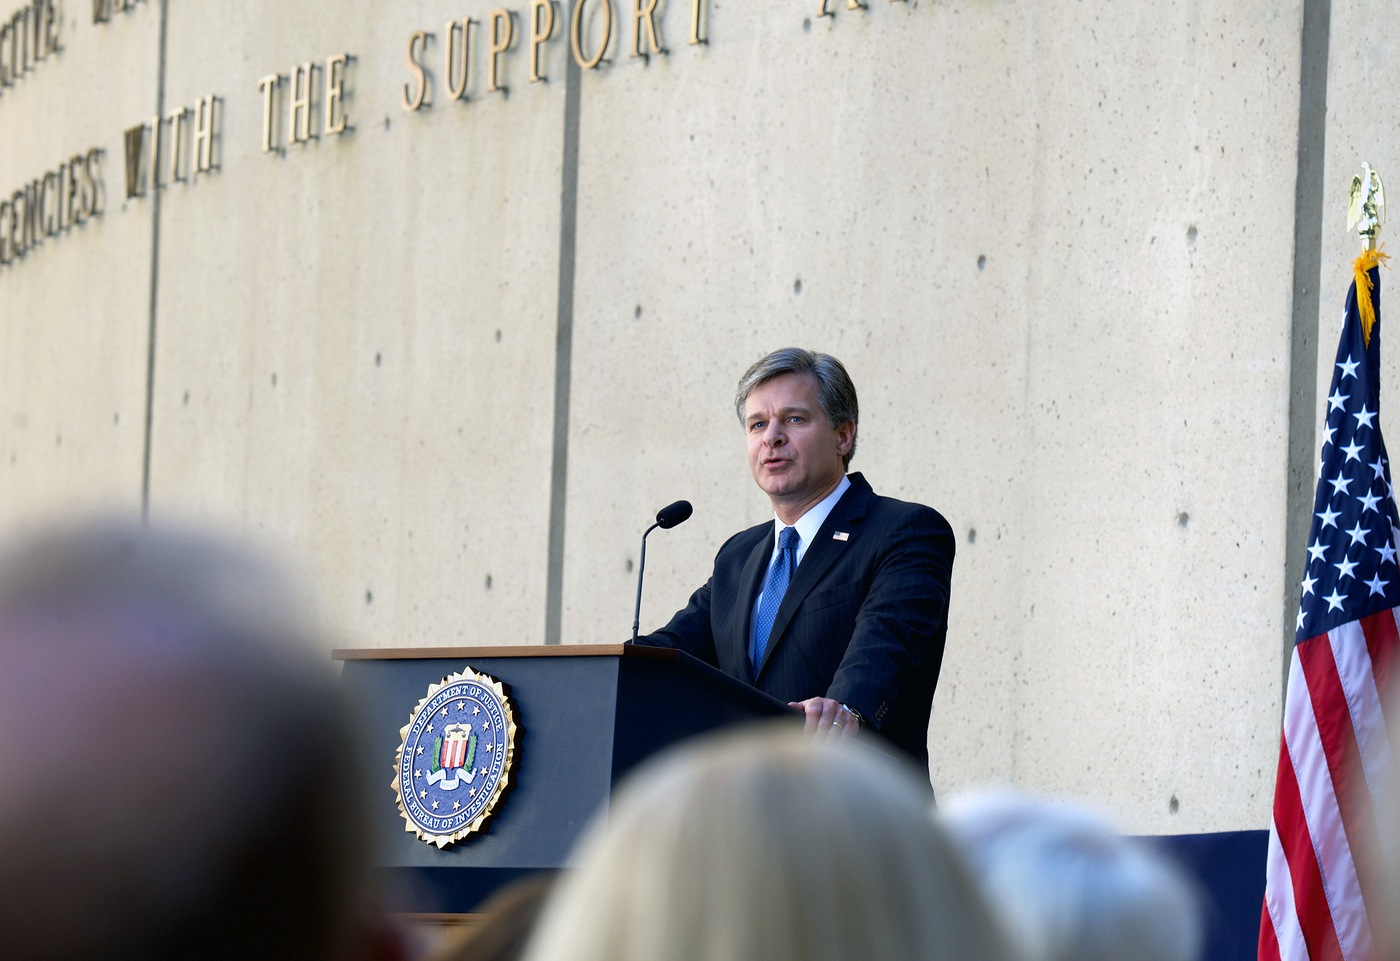 Christopher Wray speaks at the ceremony marking his formal installation as the eighth Director of the FBI at FBI Headquarters in Washington, D.C. on September 28, 2017.